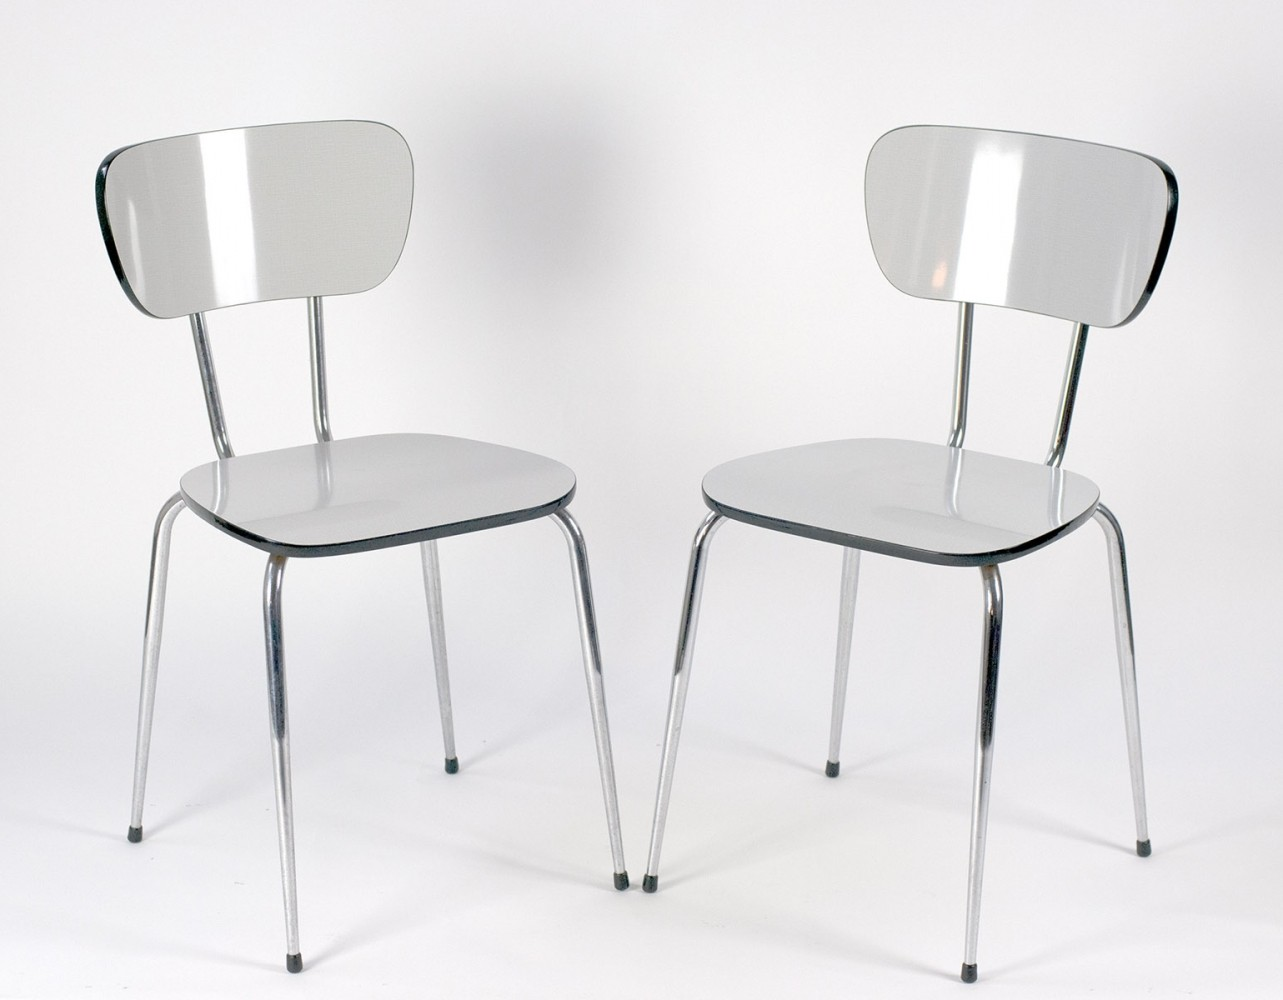 Pair of Chairs in white Resopal, 1970s